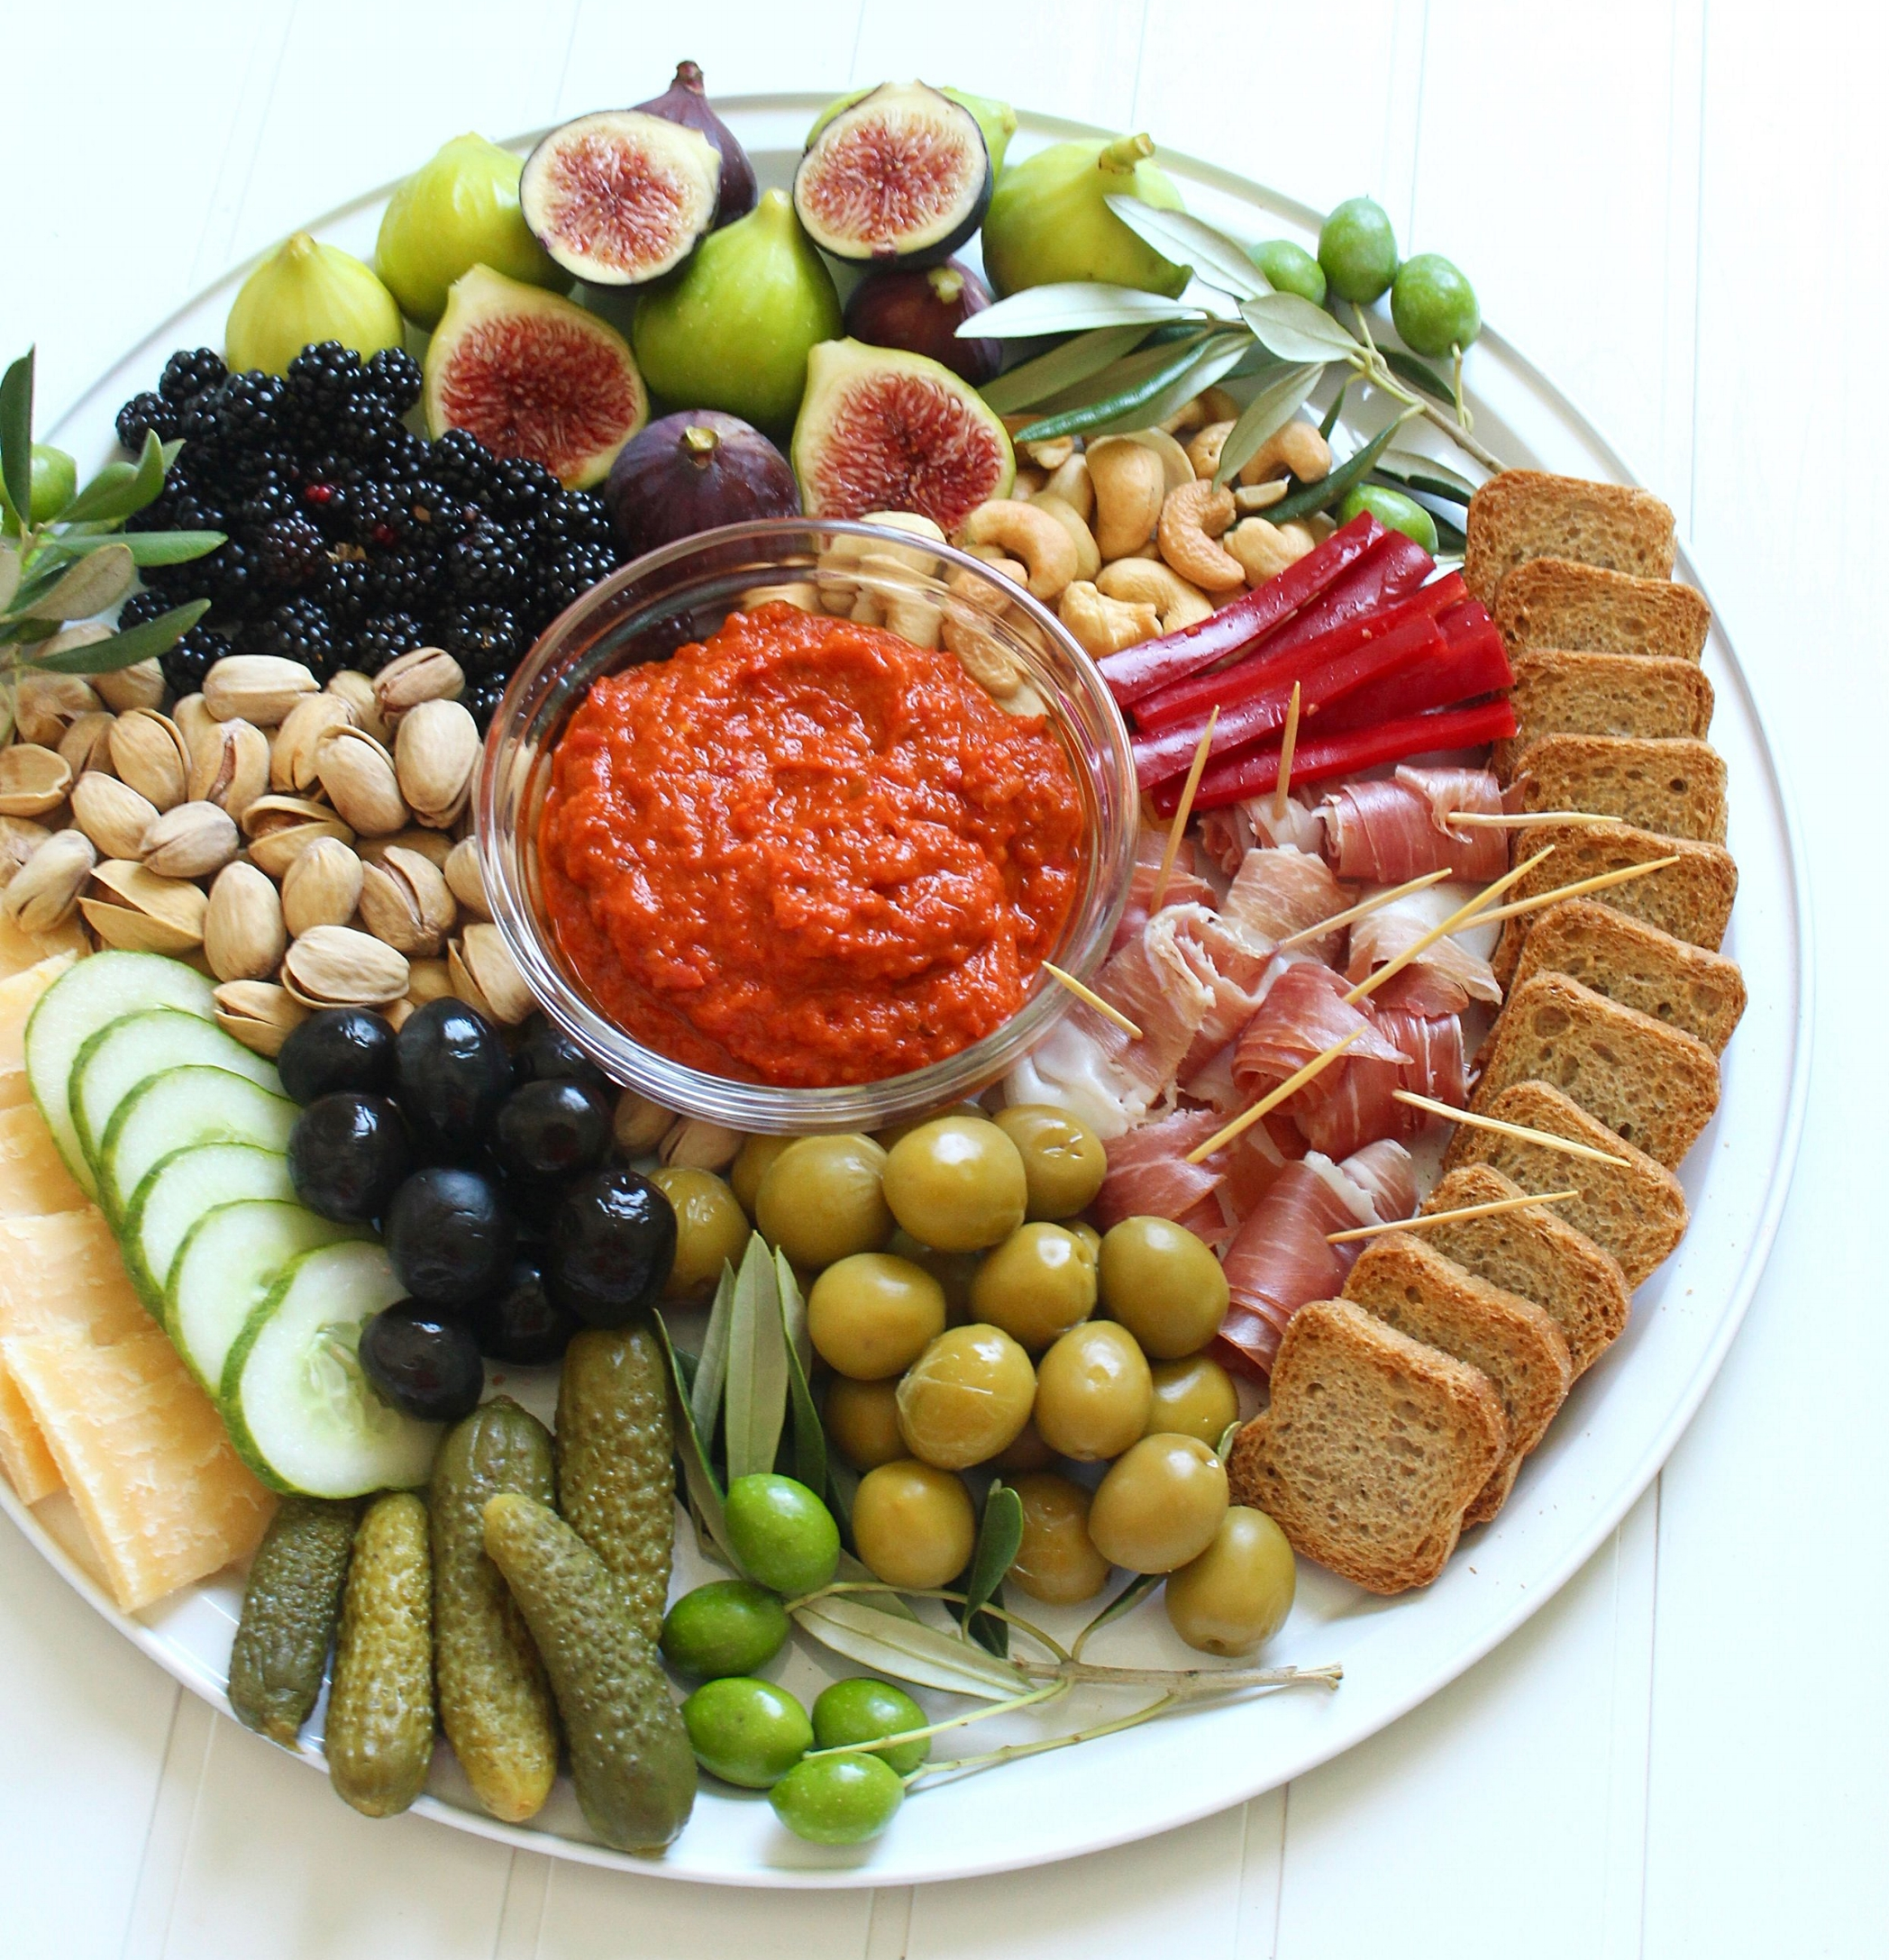 Lunch time platter Croatian styles! Roadside figs and blackberries, green and black olives, pungent cheese, rolled prosciutto, gherkins, fresh veggies, biscotti, nuts and ajvar - a super popular pepper-based condiment here.